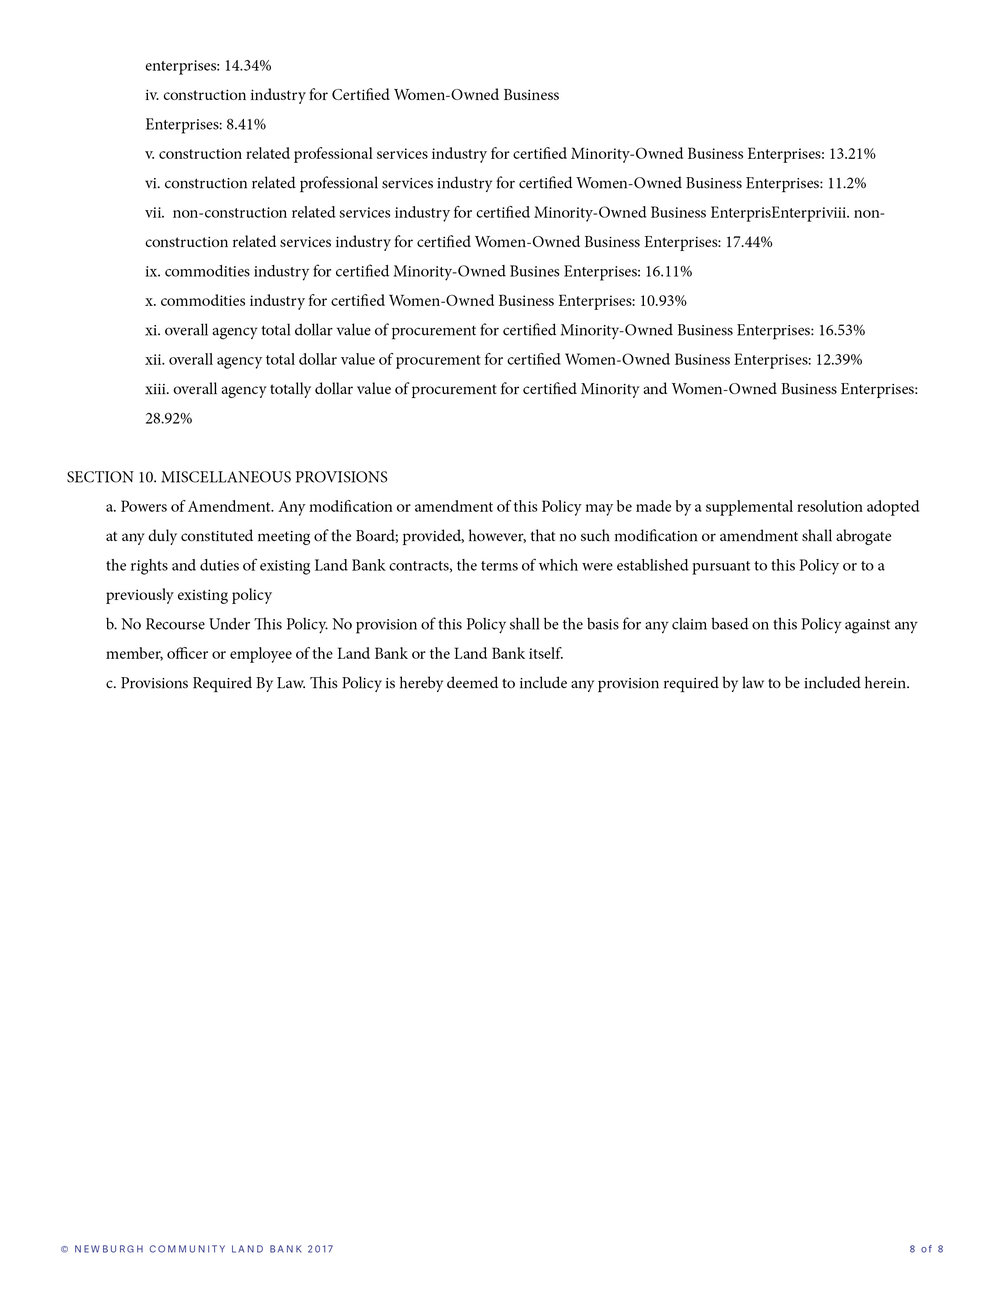 NCLB Procurement Policy8.jpg